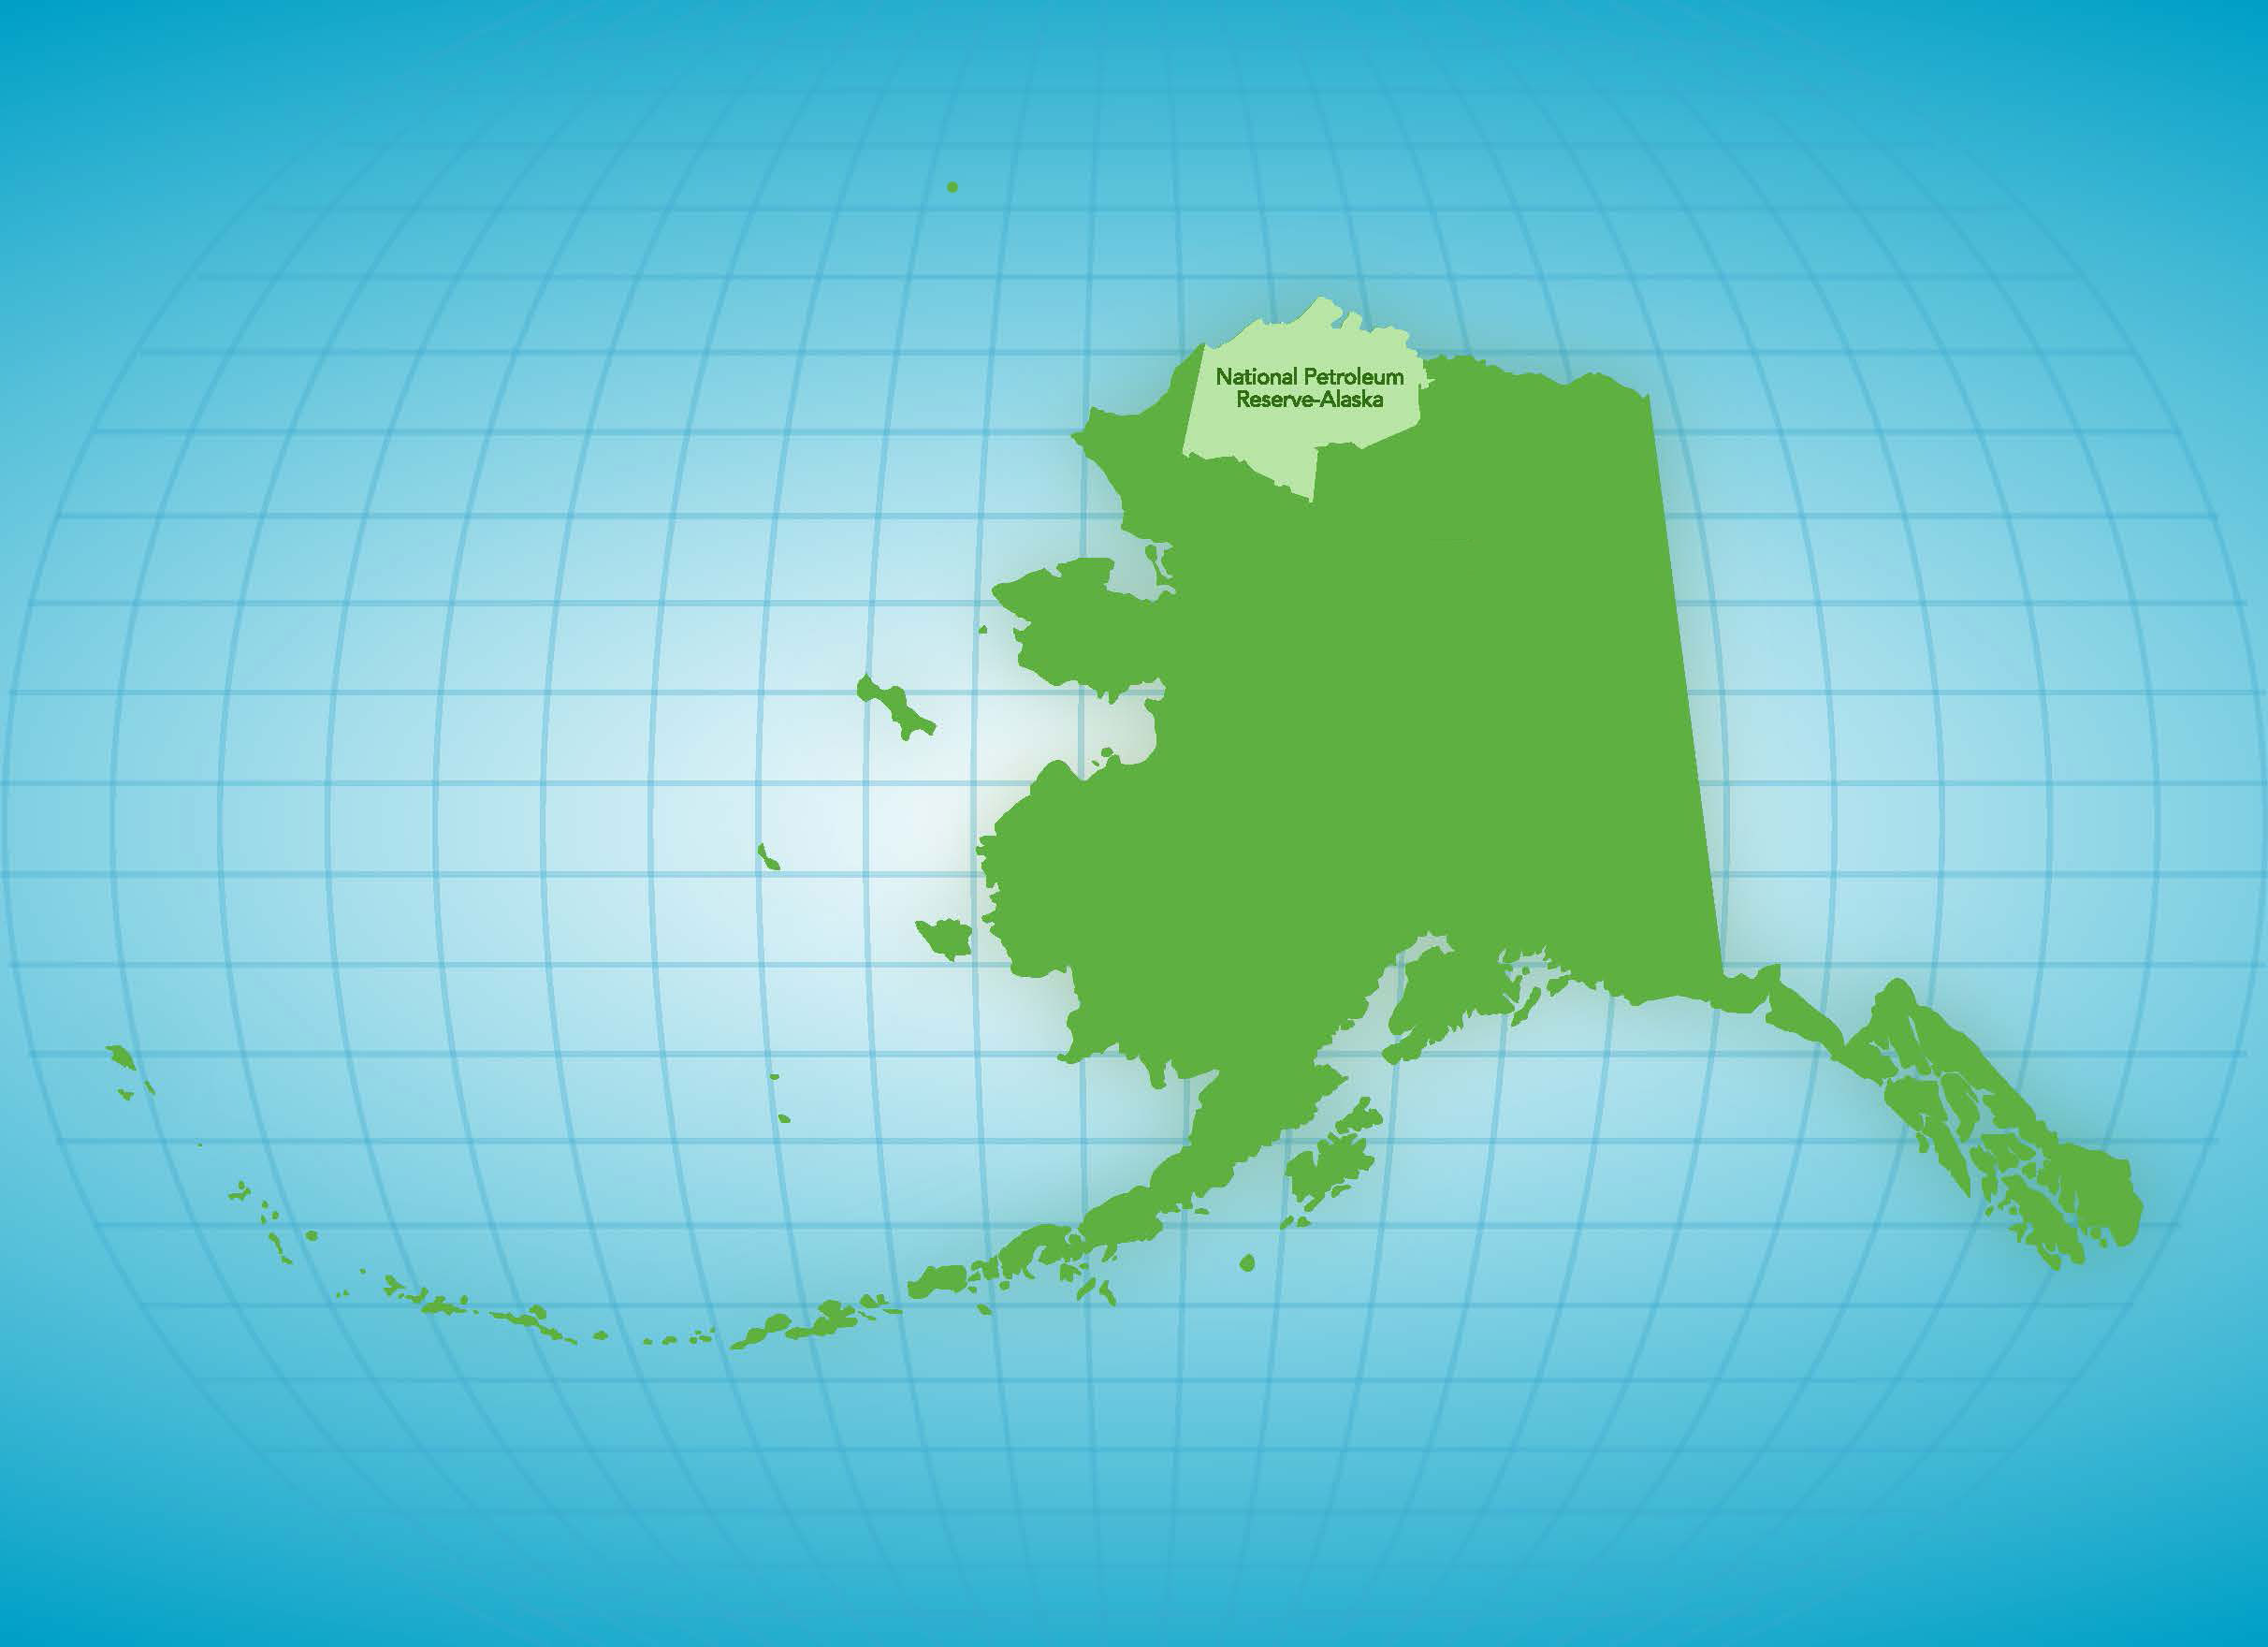 Map of Alaska with NPR-A highlight